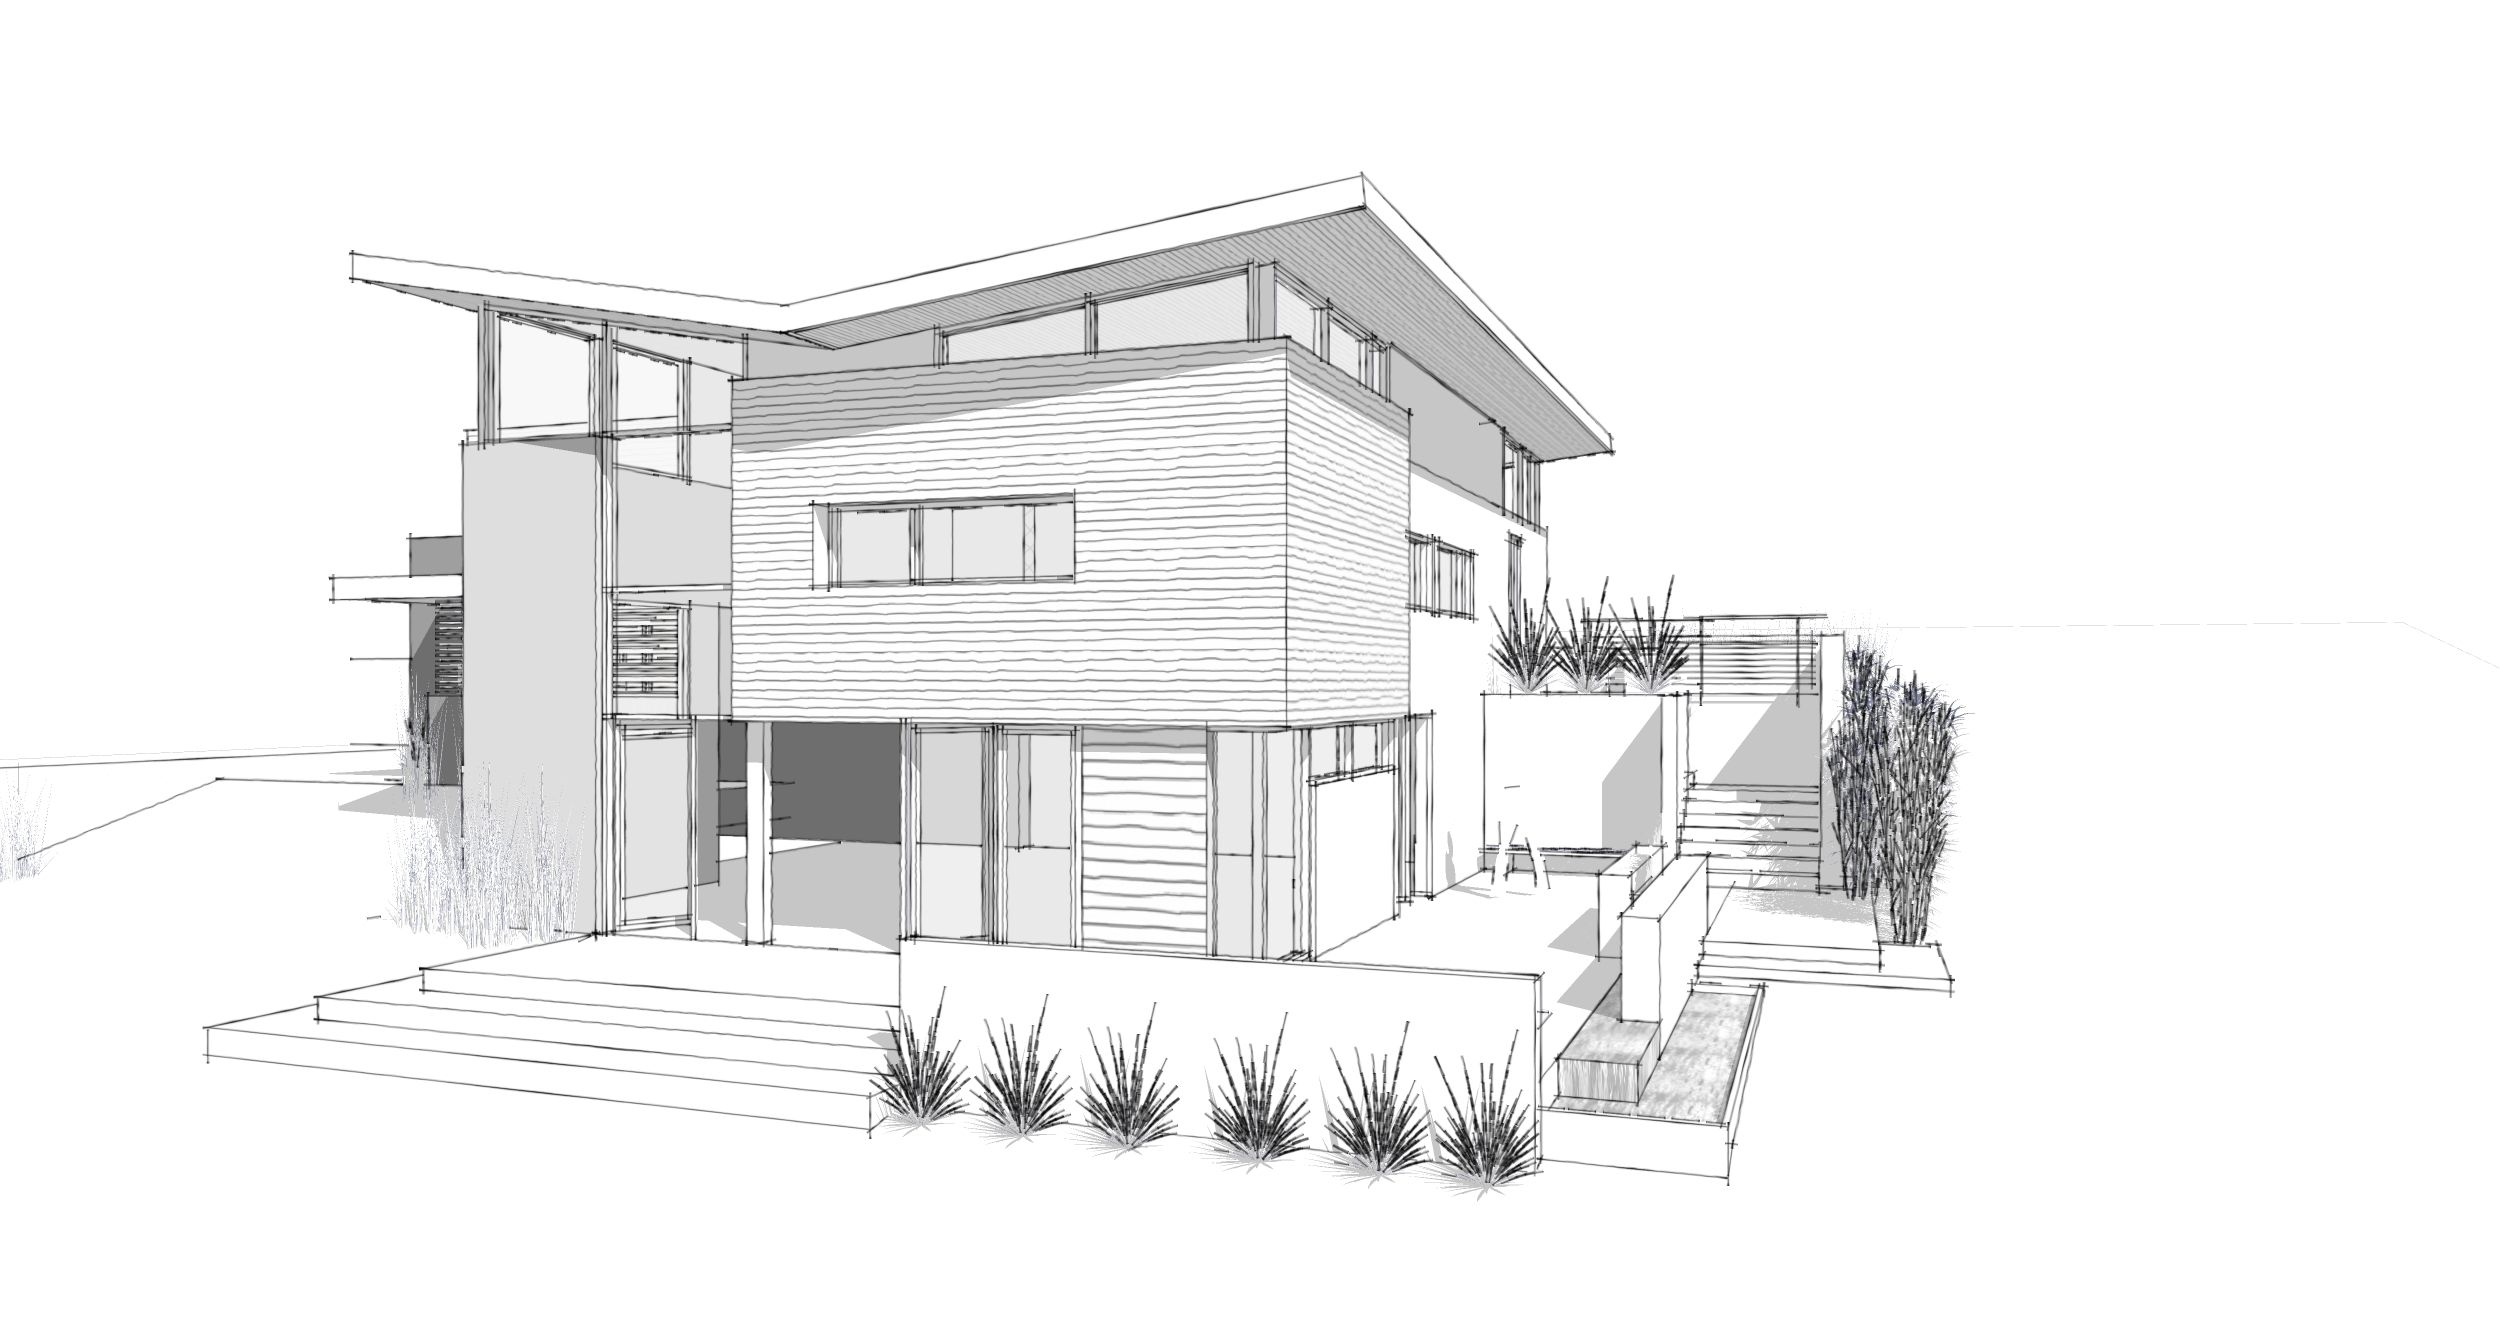 Modern home architecture sketches design ideas 13435 for House design drawing